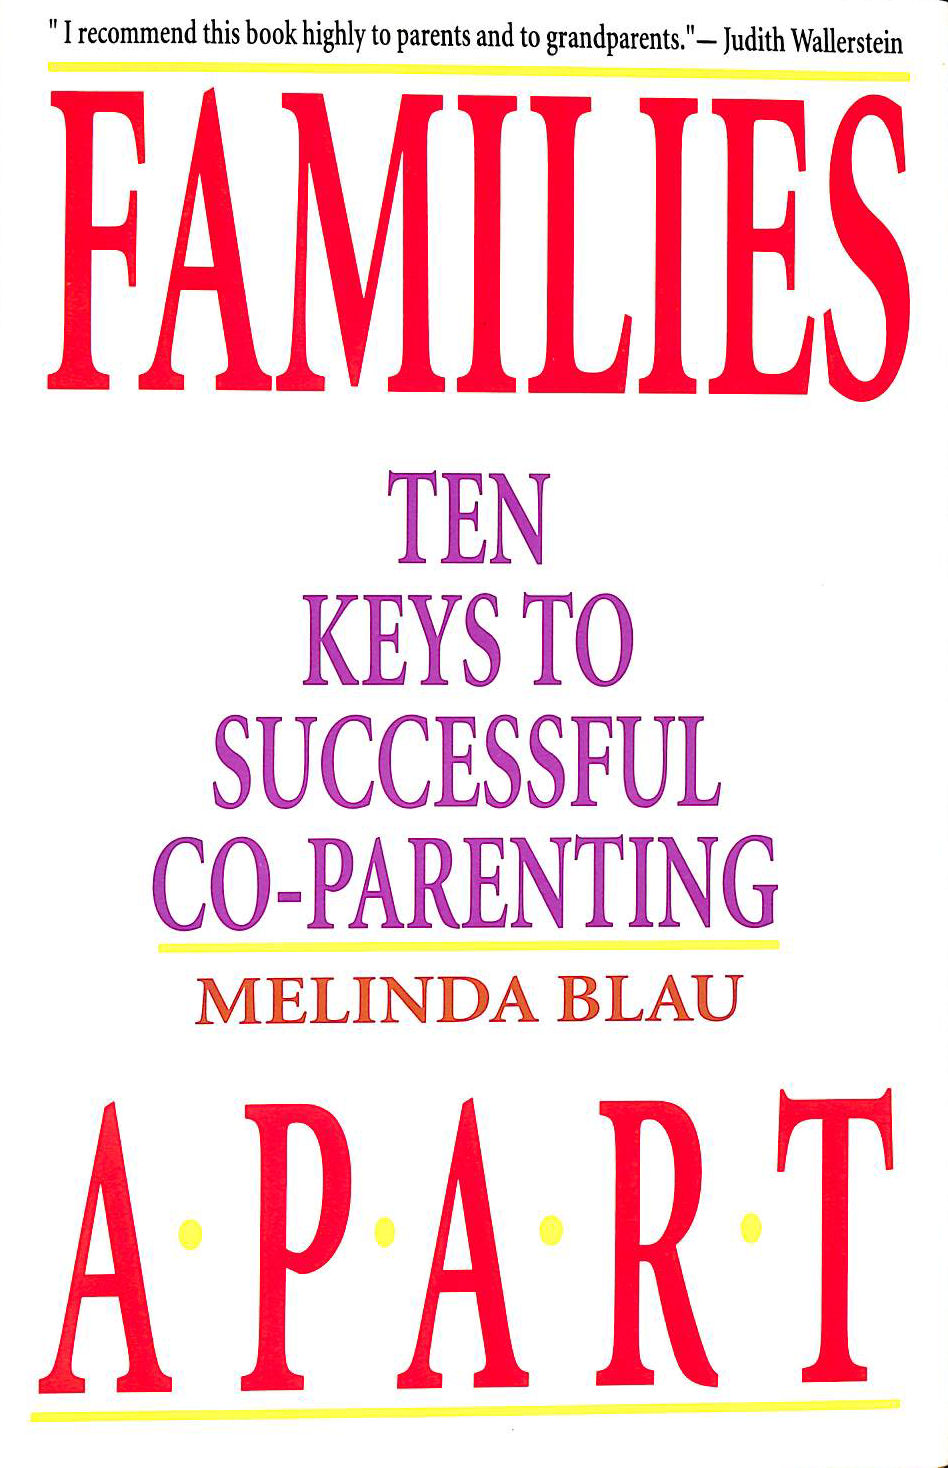 Image for Families Apart: Ten Keys To Successful Co-Parenting